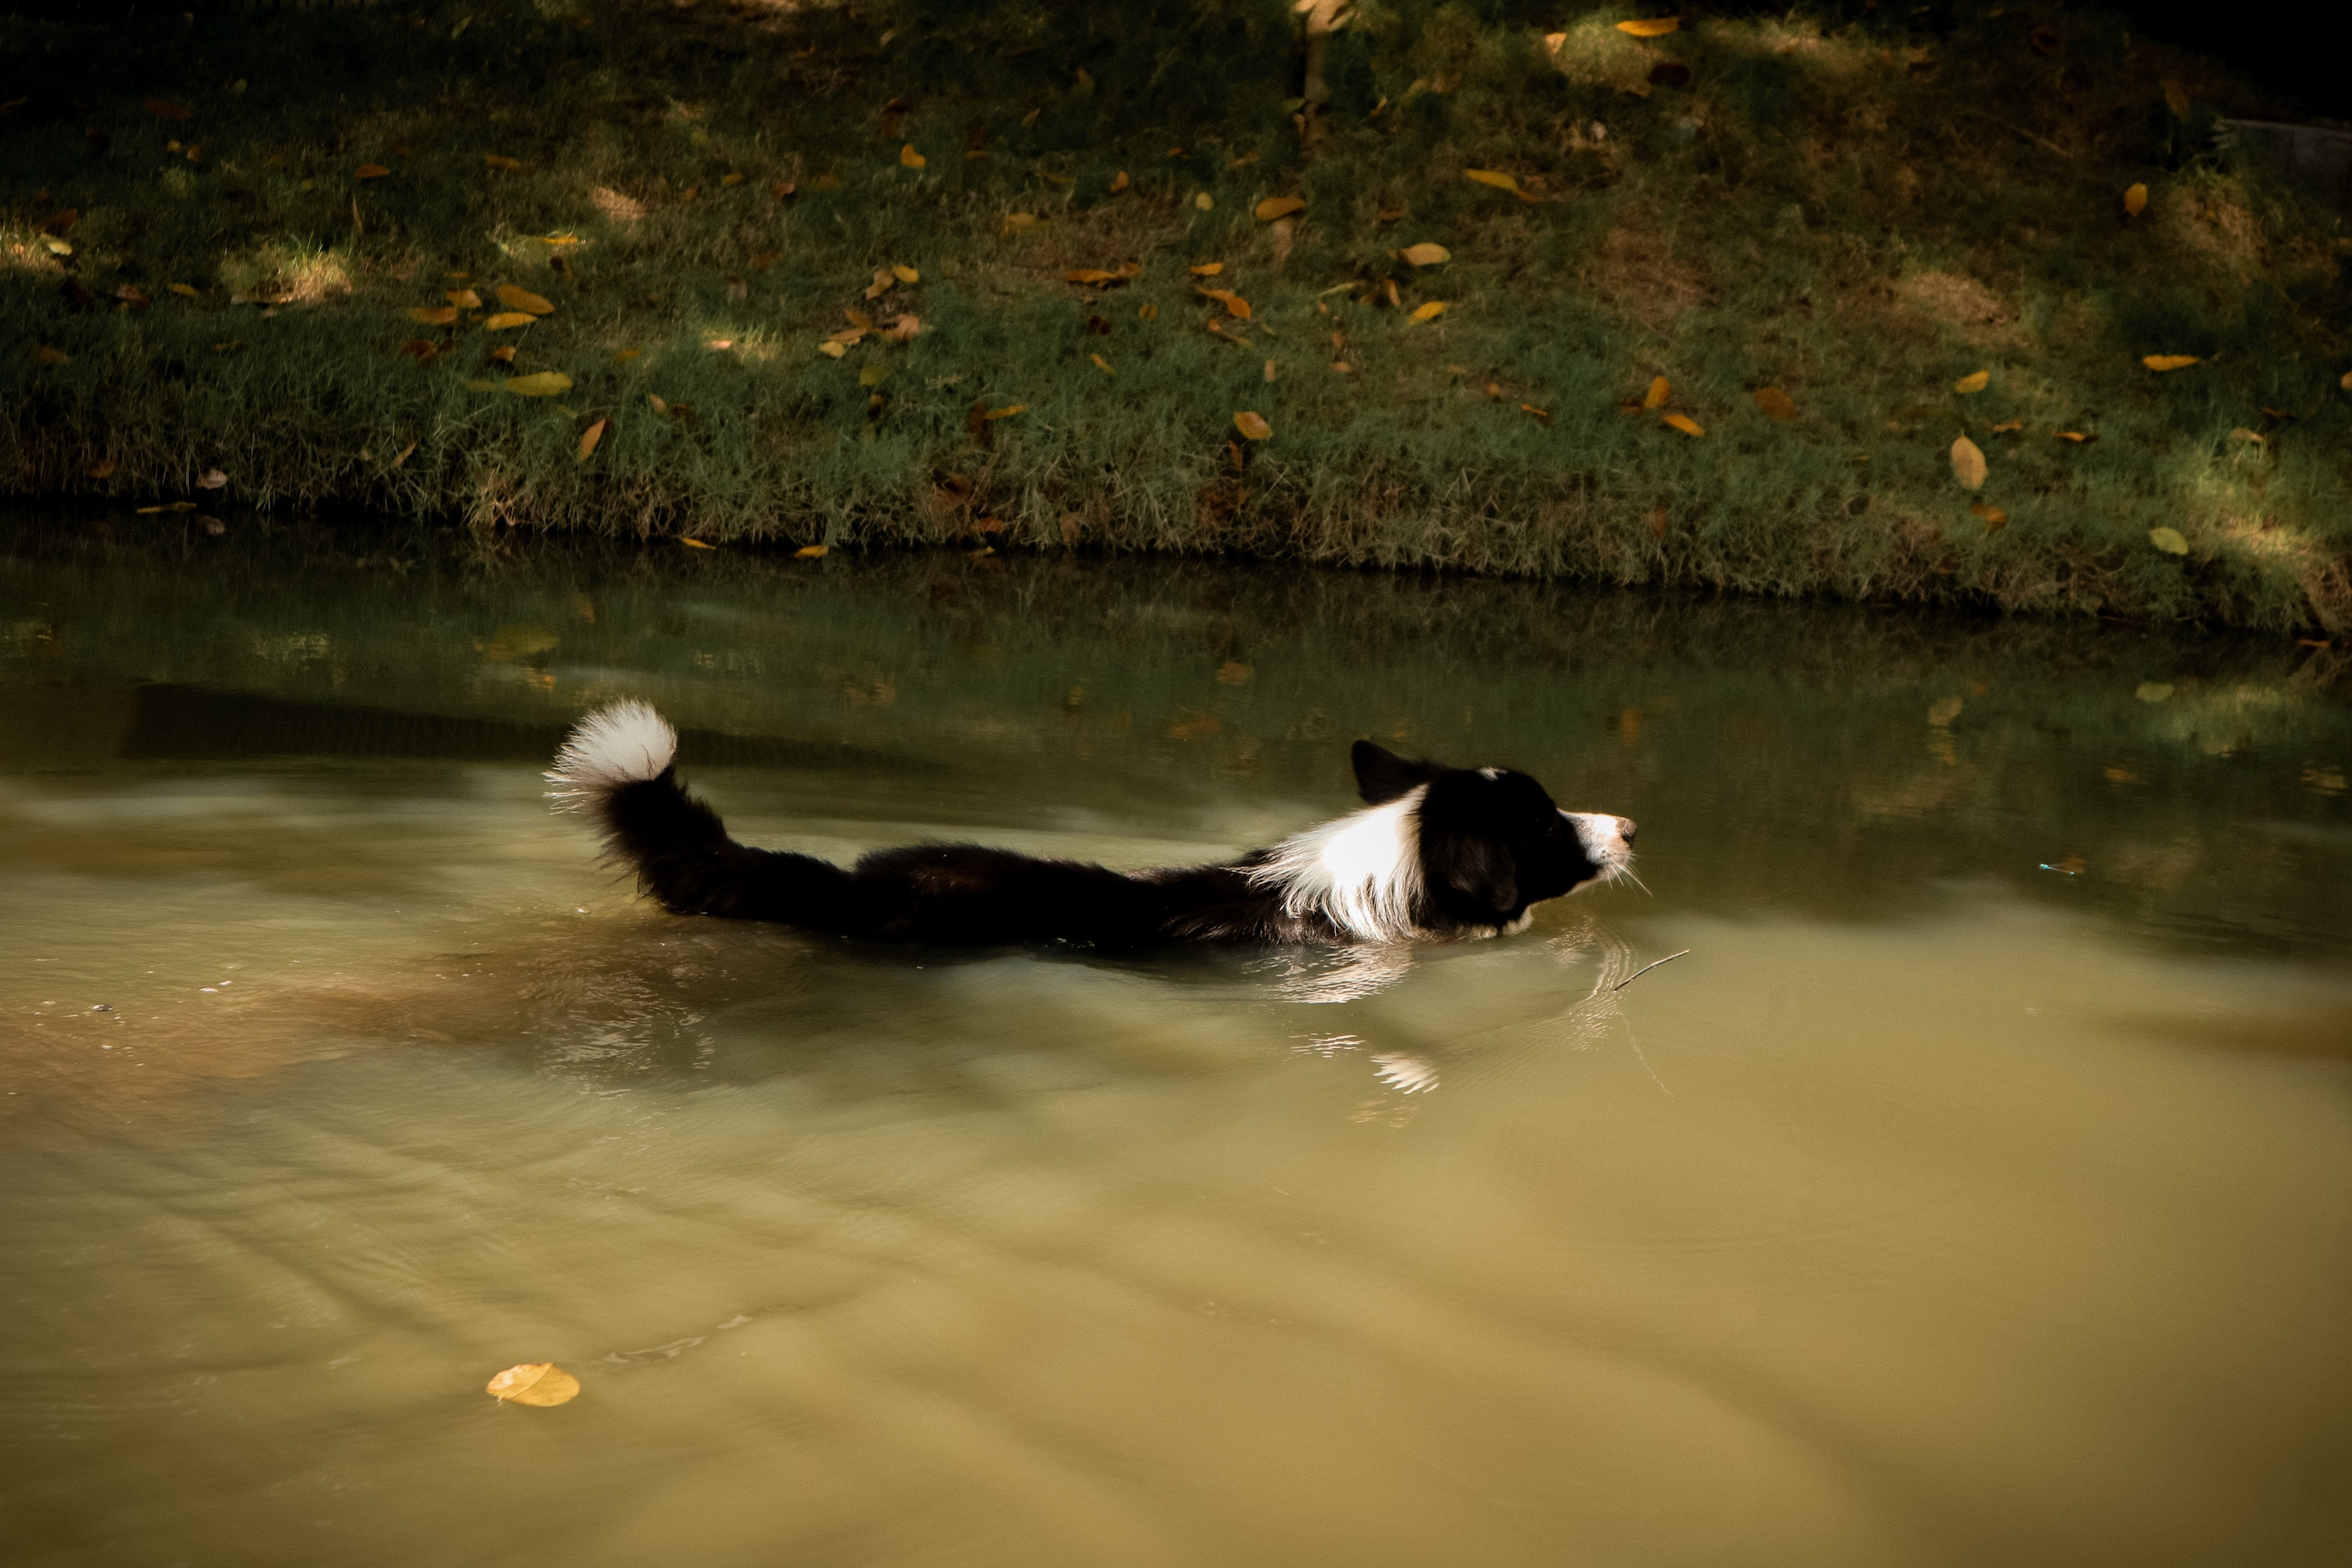 A border collie swimming in a pond at a dog park.